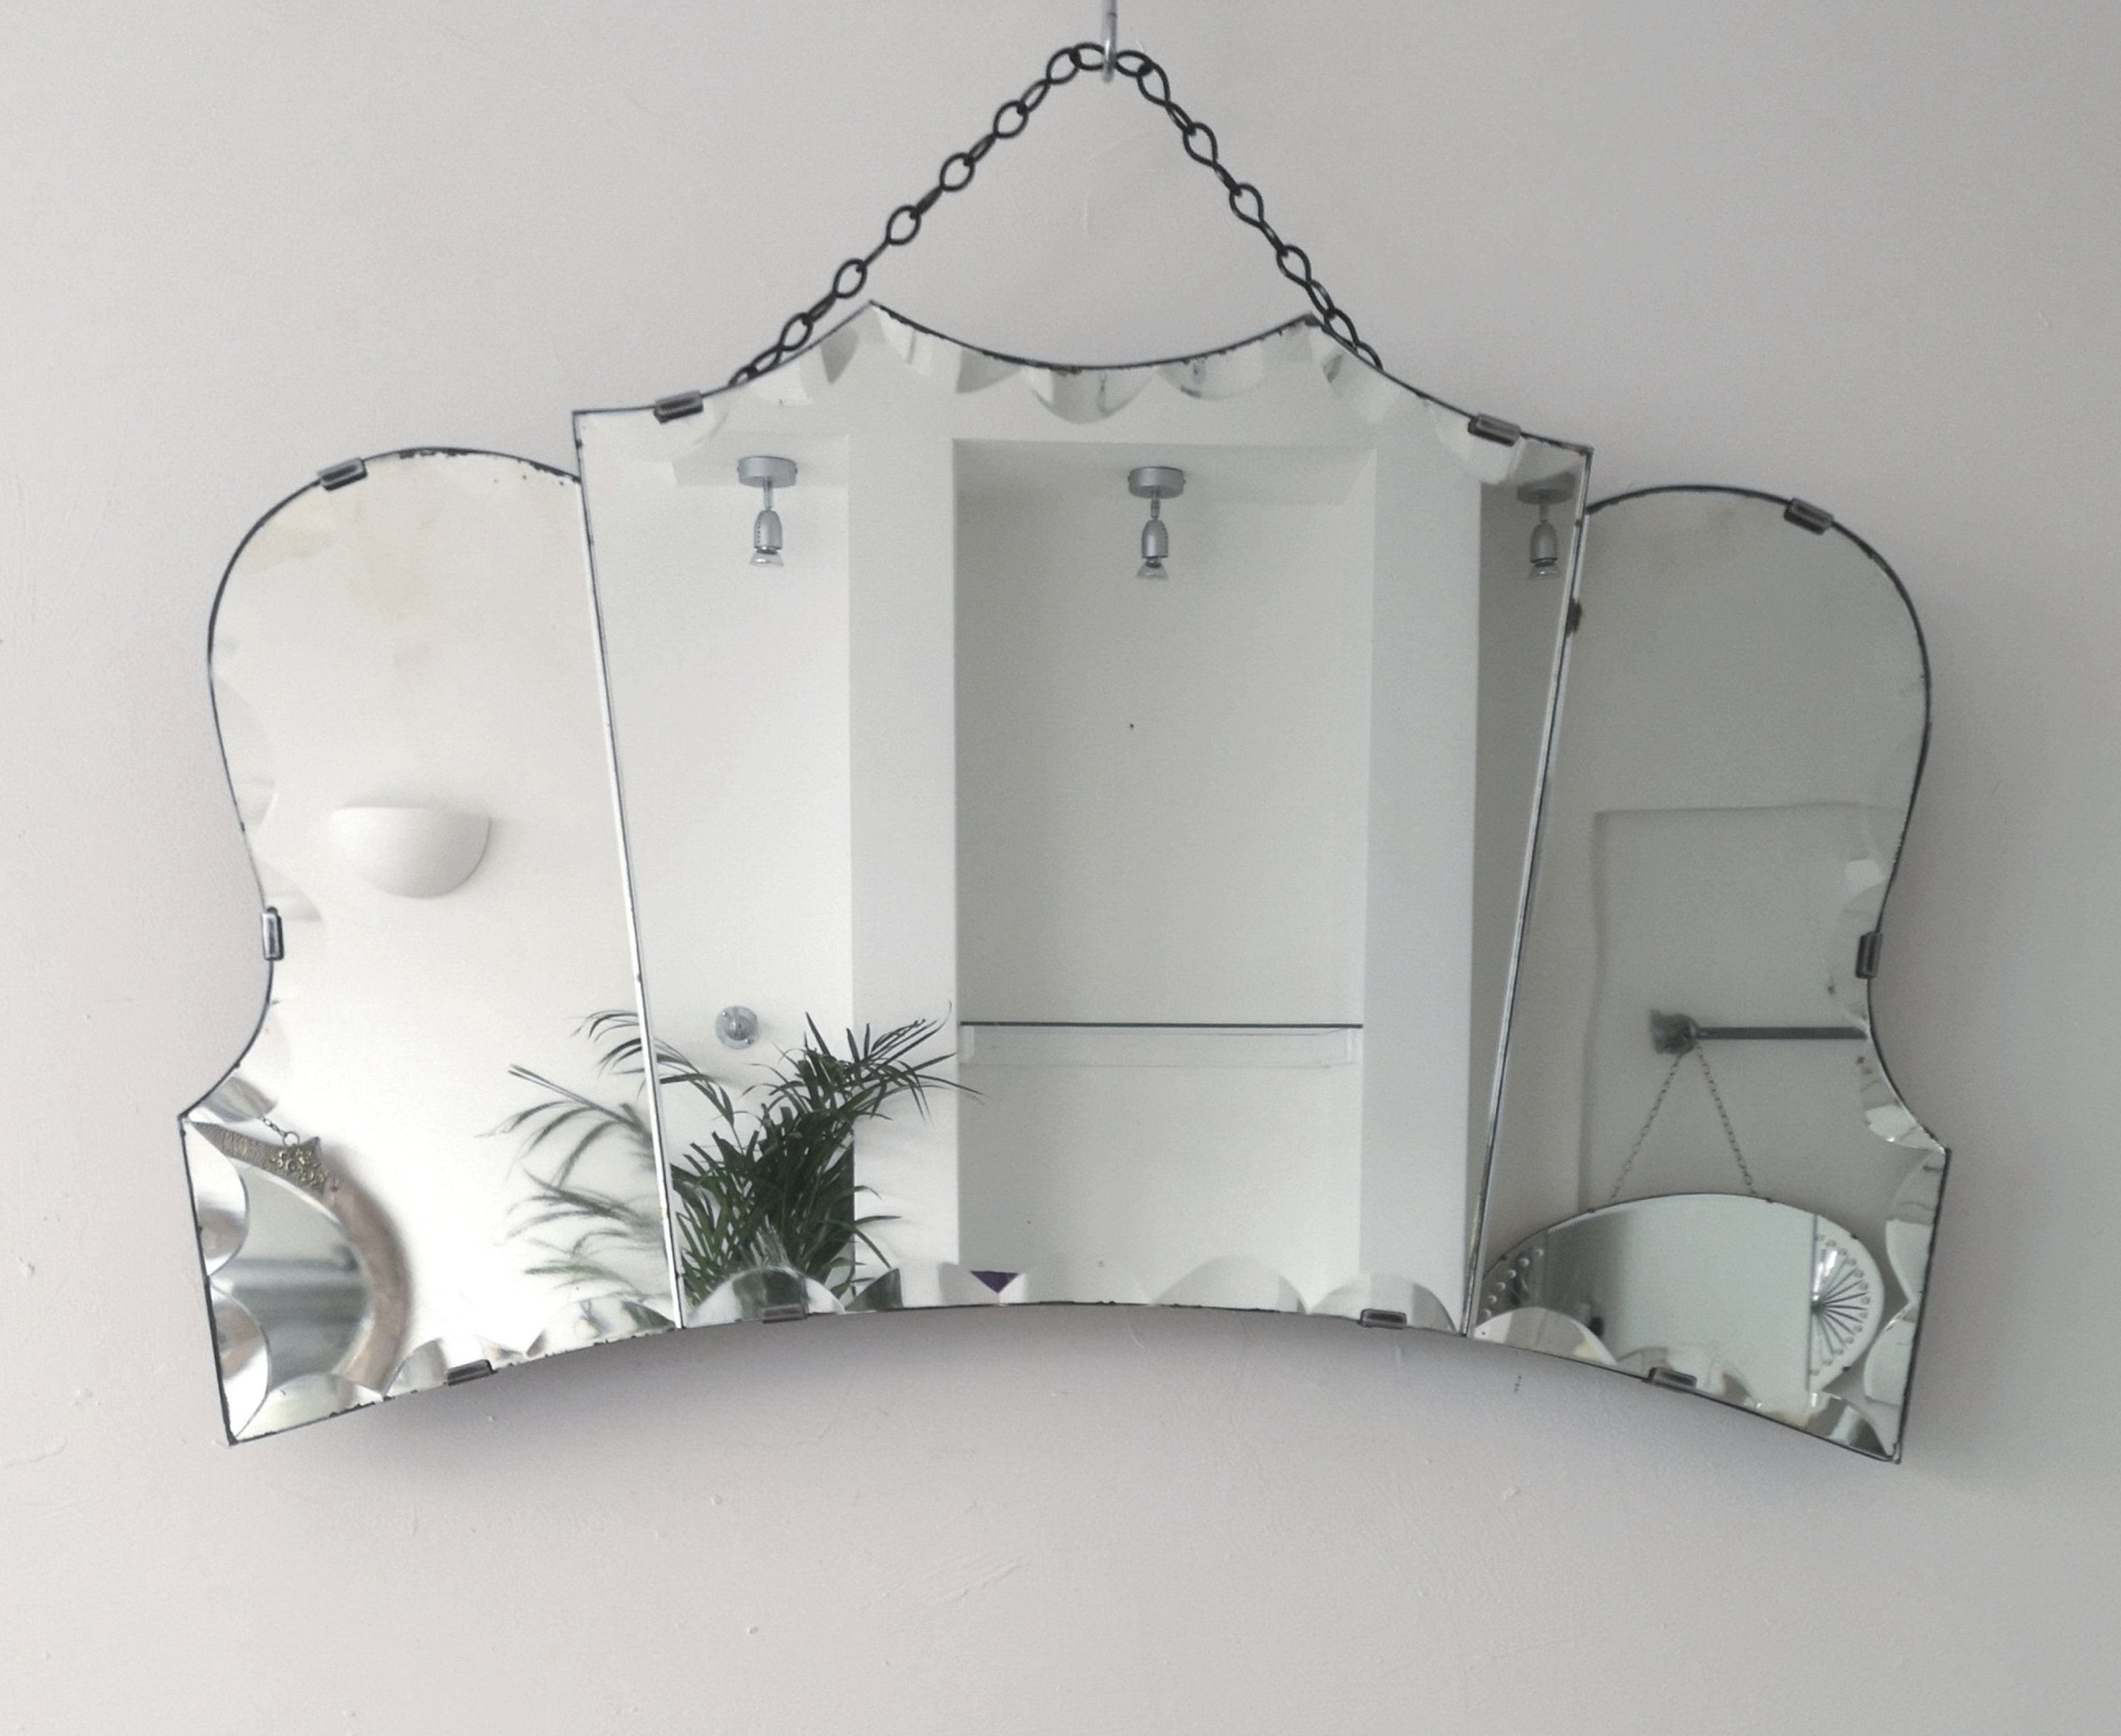 Large Art Deco Wall Mirrors With Regard To 2019 Large Art Deco Mirror Fan Mirror Large Art Deco Wall Mirror With Three Mirror Panels Frameless Mirror (View 3 of 20)